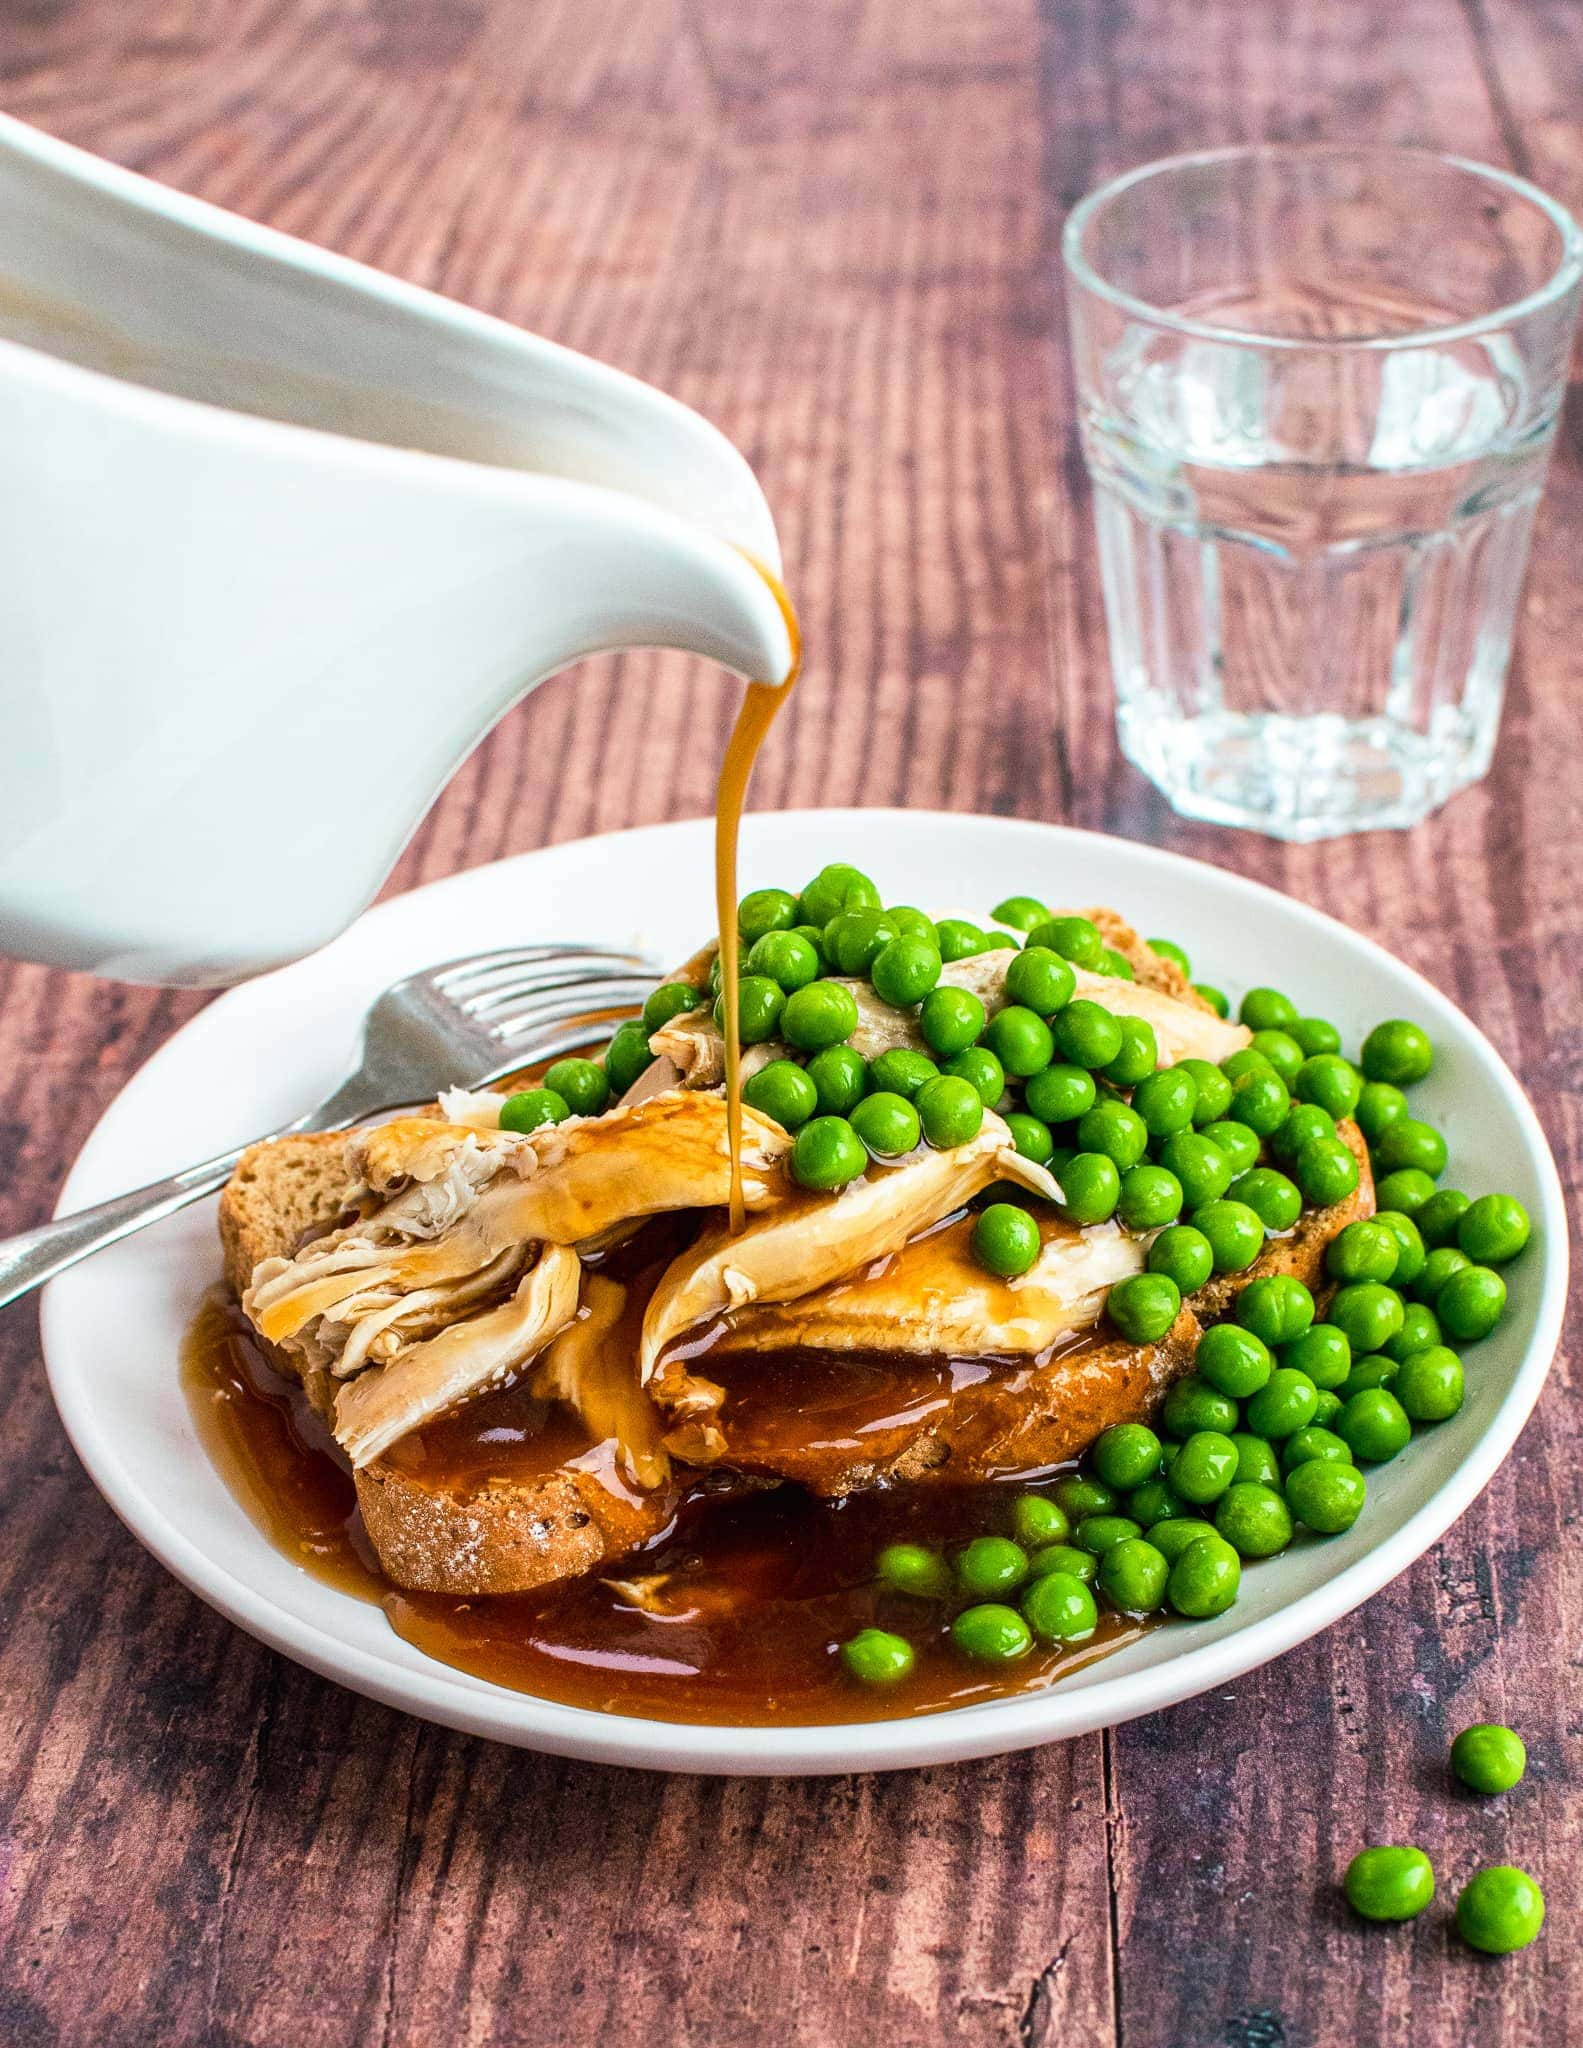 Gravy pouring on hot turkey sandwich with peas